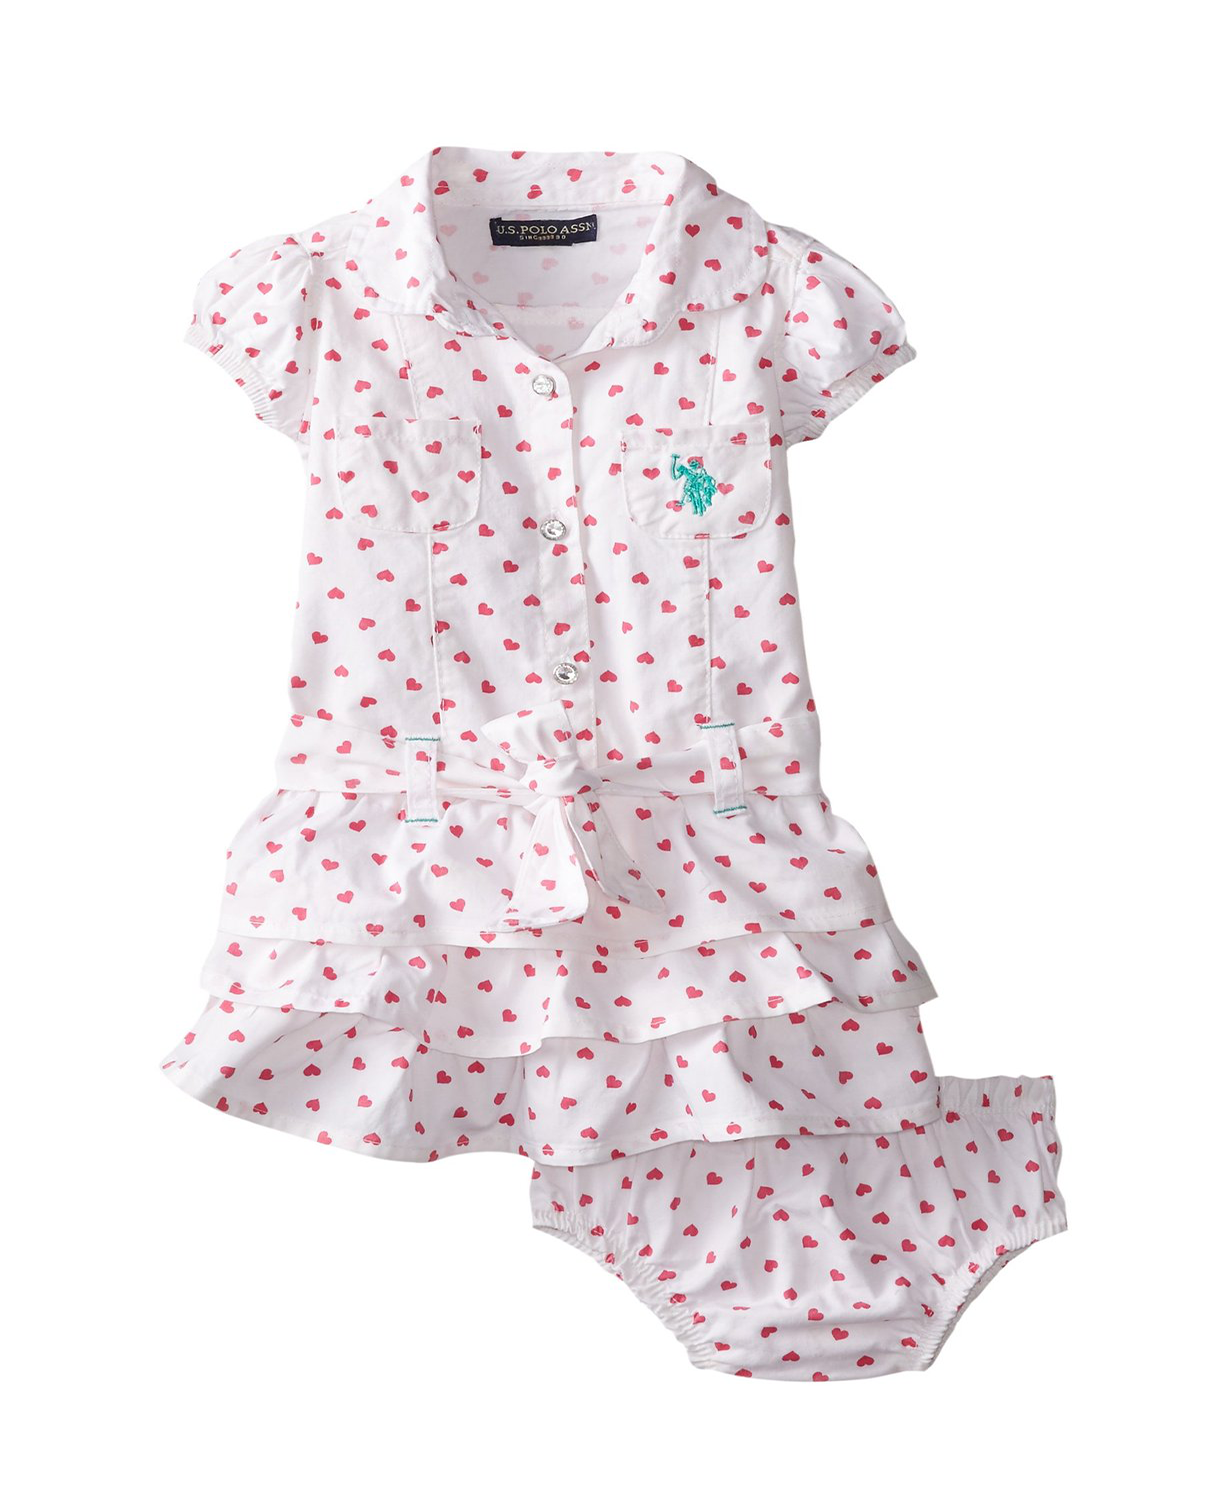 Shop for baby girls' clothing at specialtysports.ga Shop dresses, outfits, bodysuits, onesies and more.